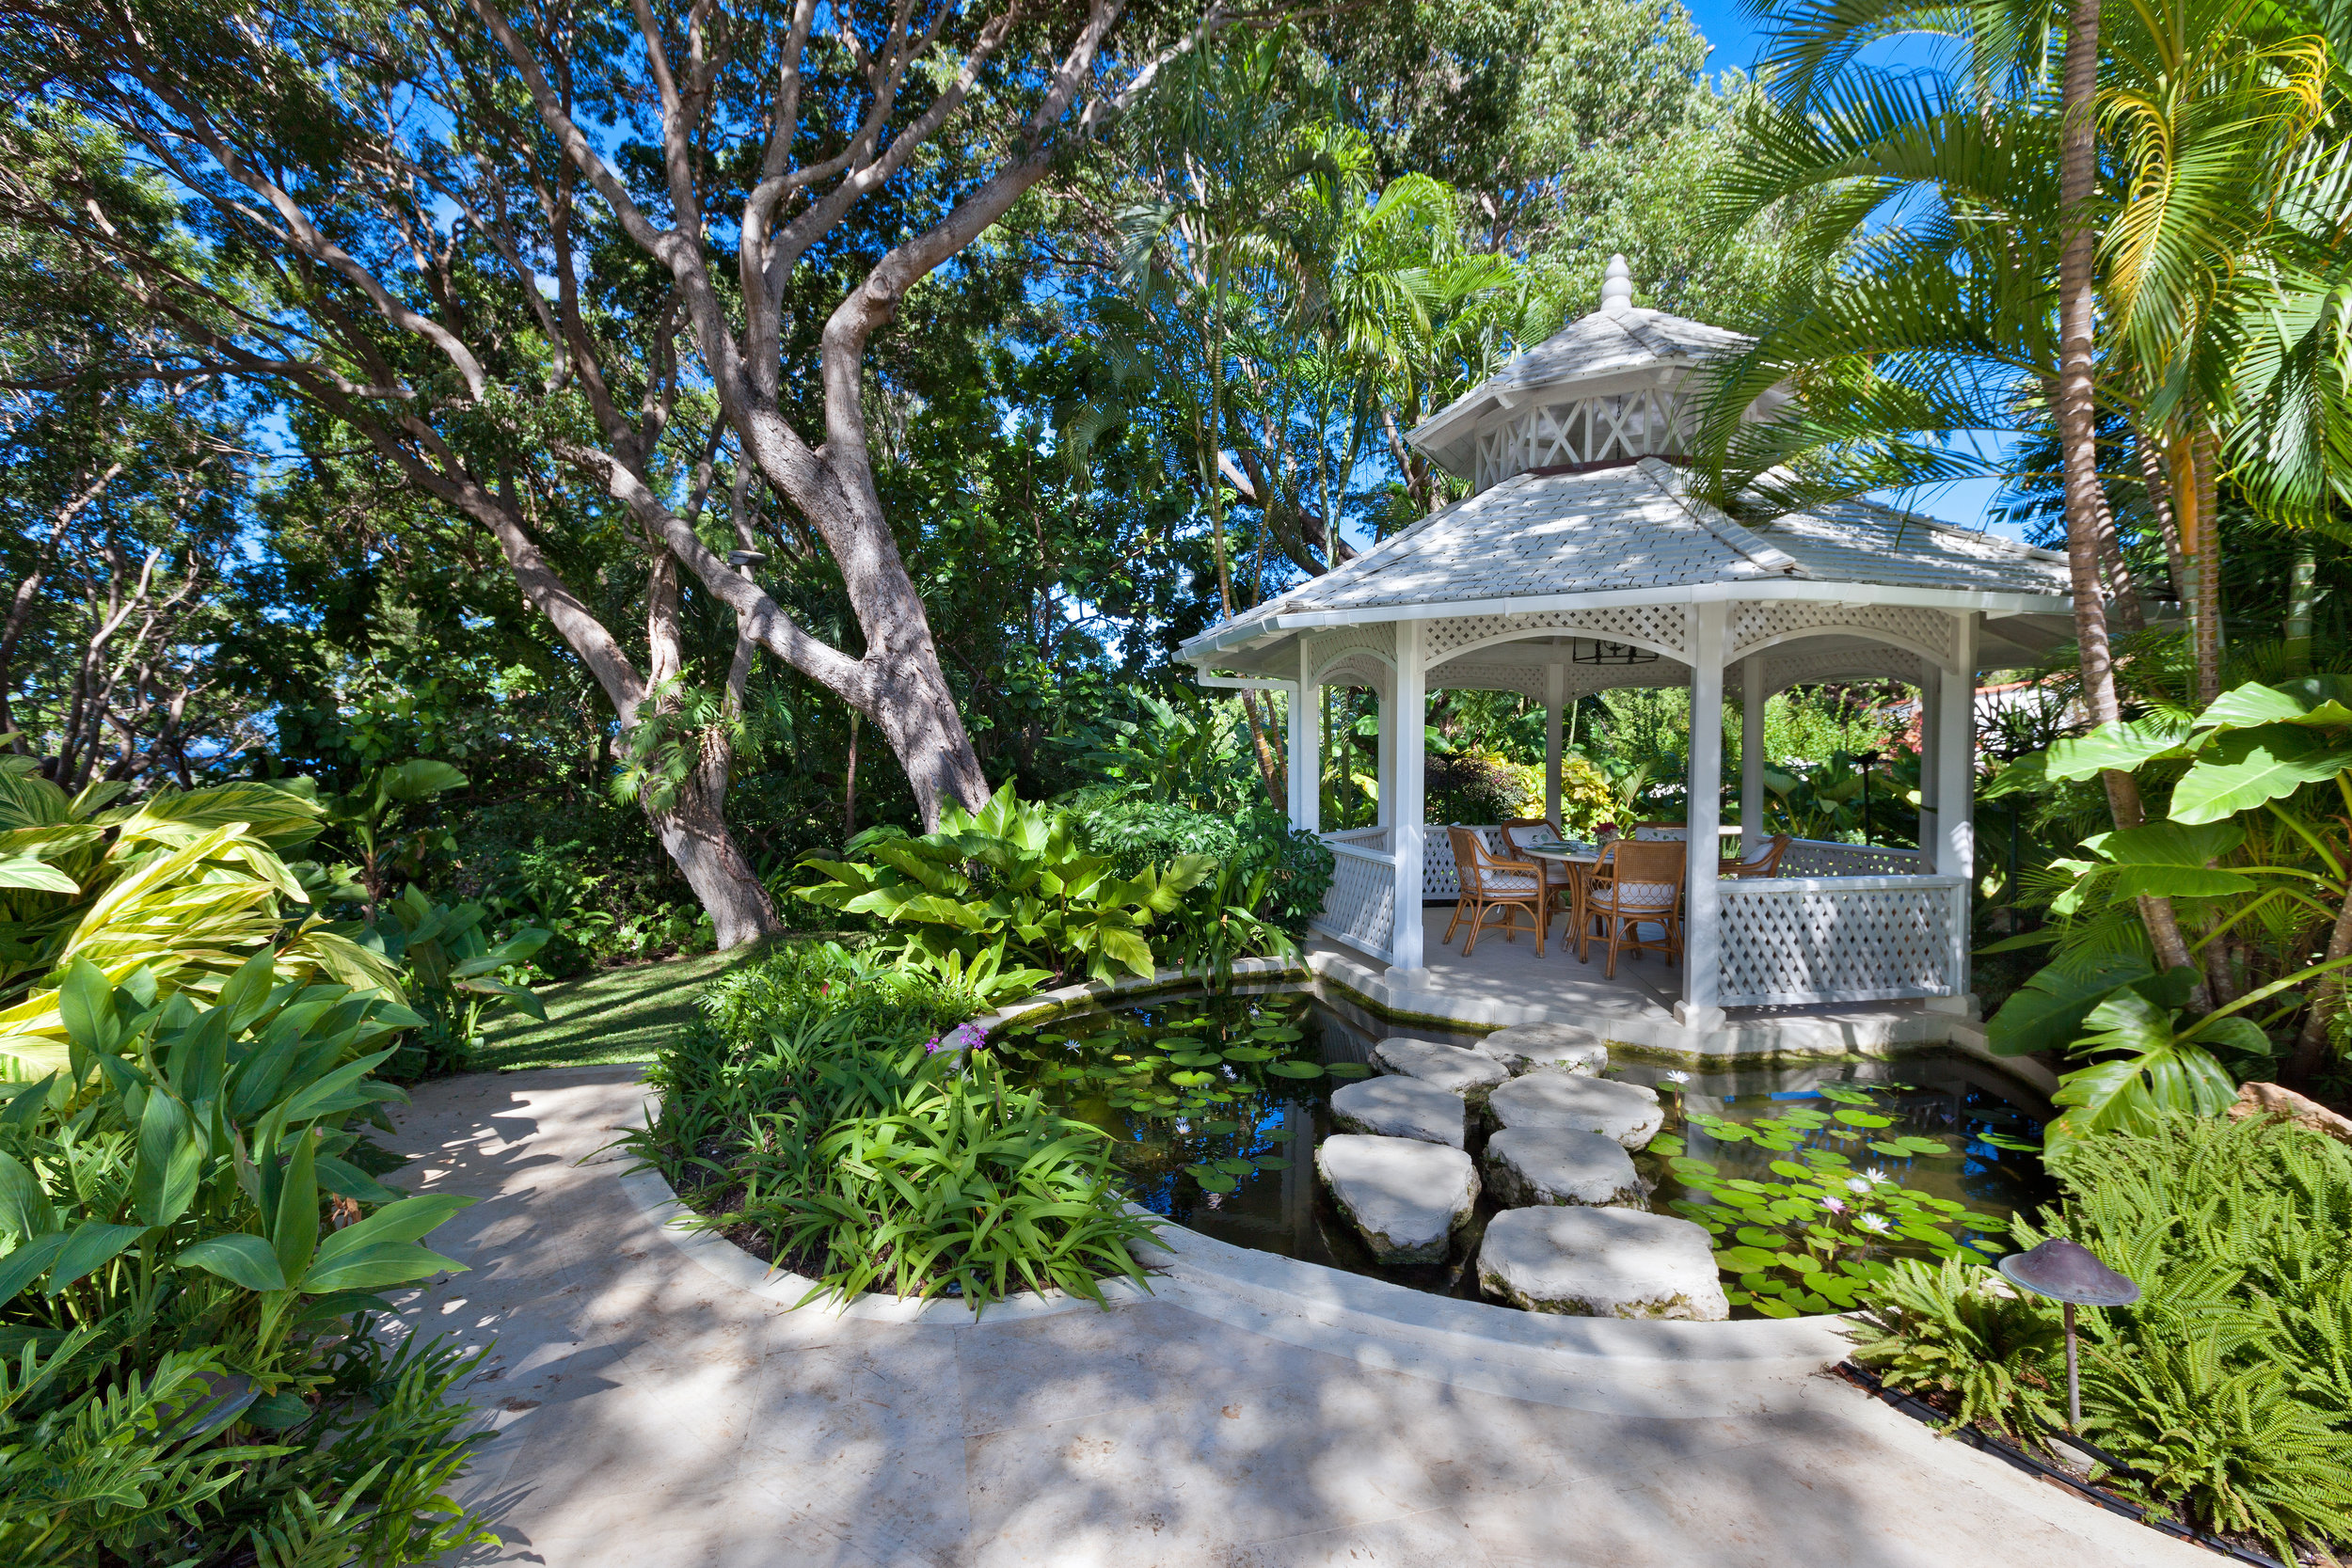 KLAIRAN SANDY LANE DEC-2015 GAZEBO EXTERIOR.jpg